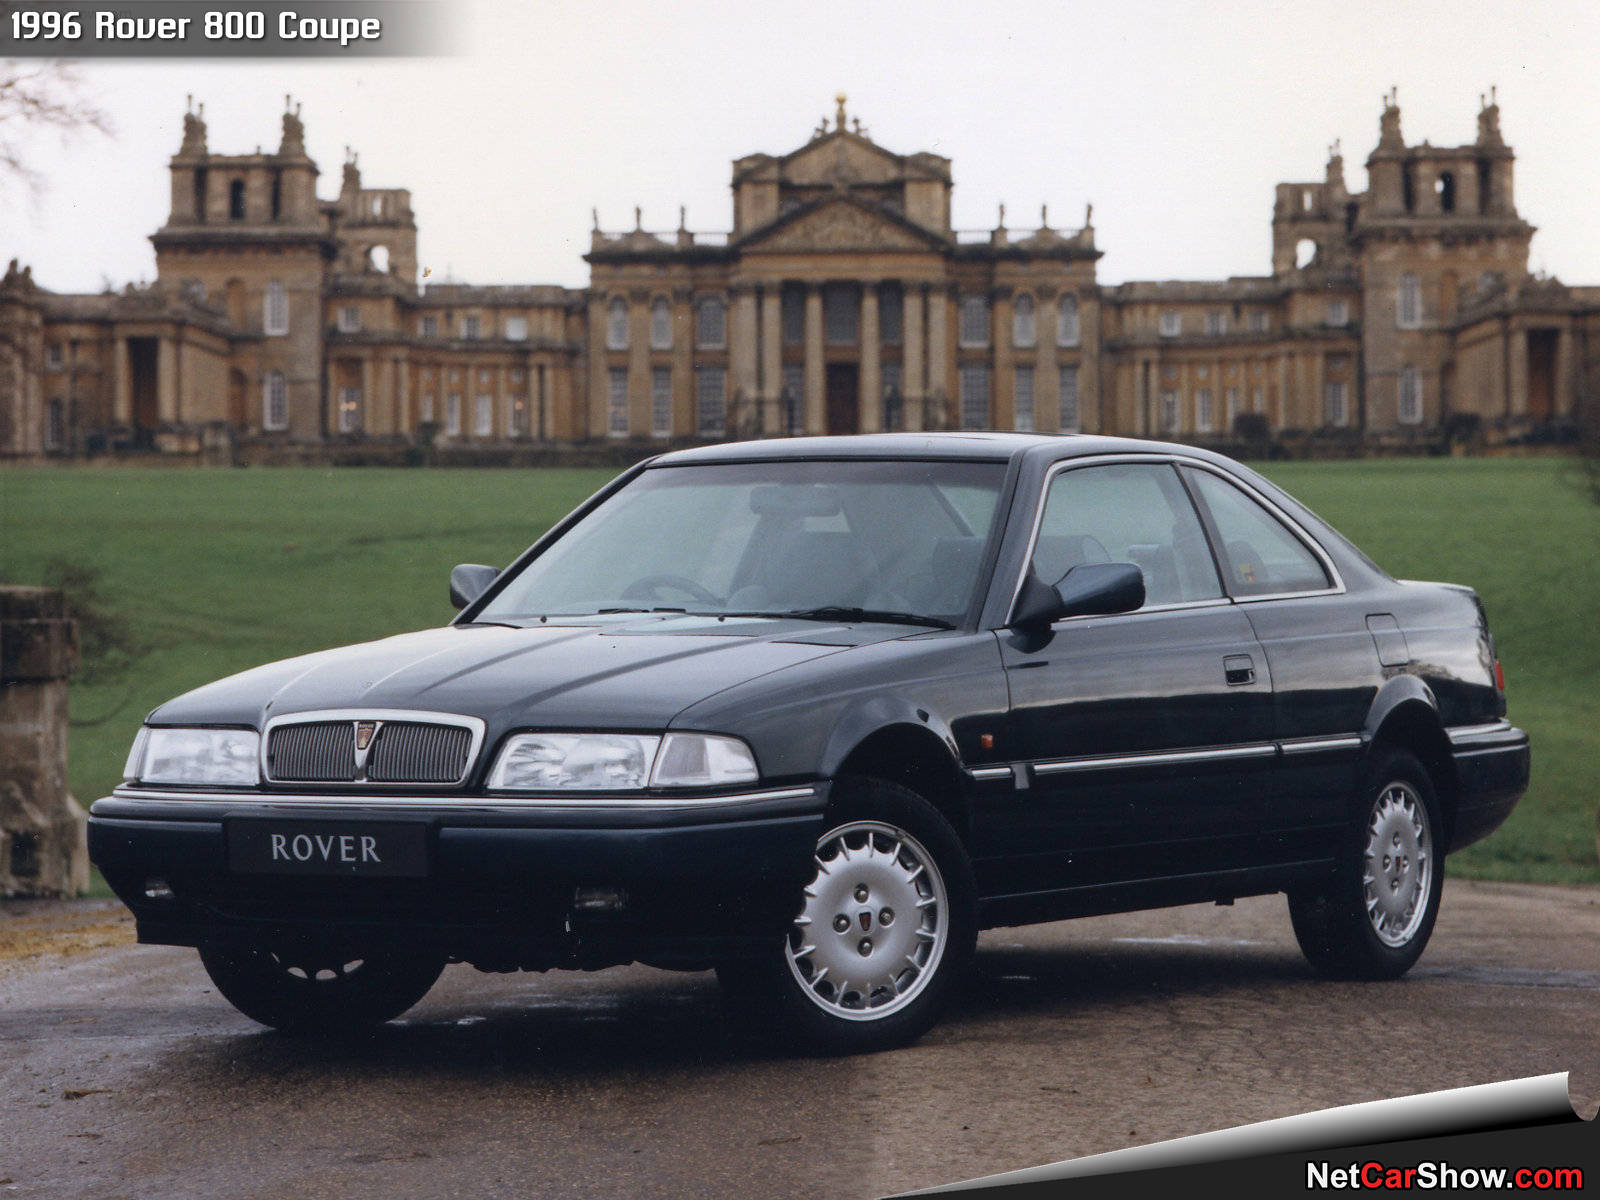 Cars rover 800